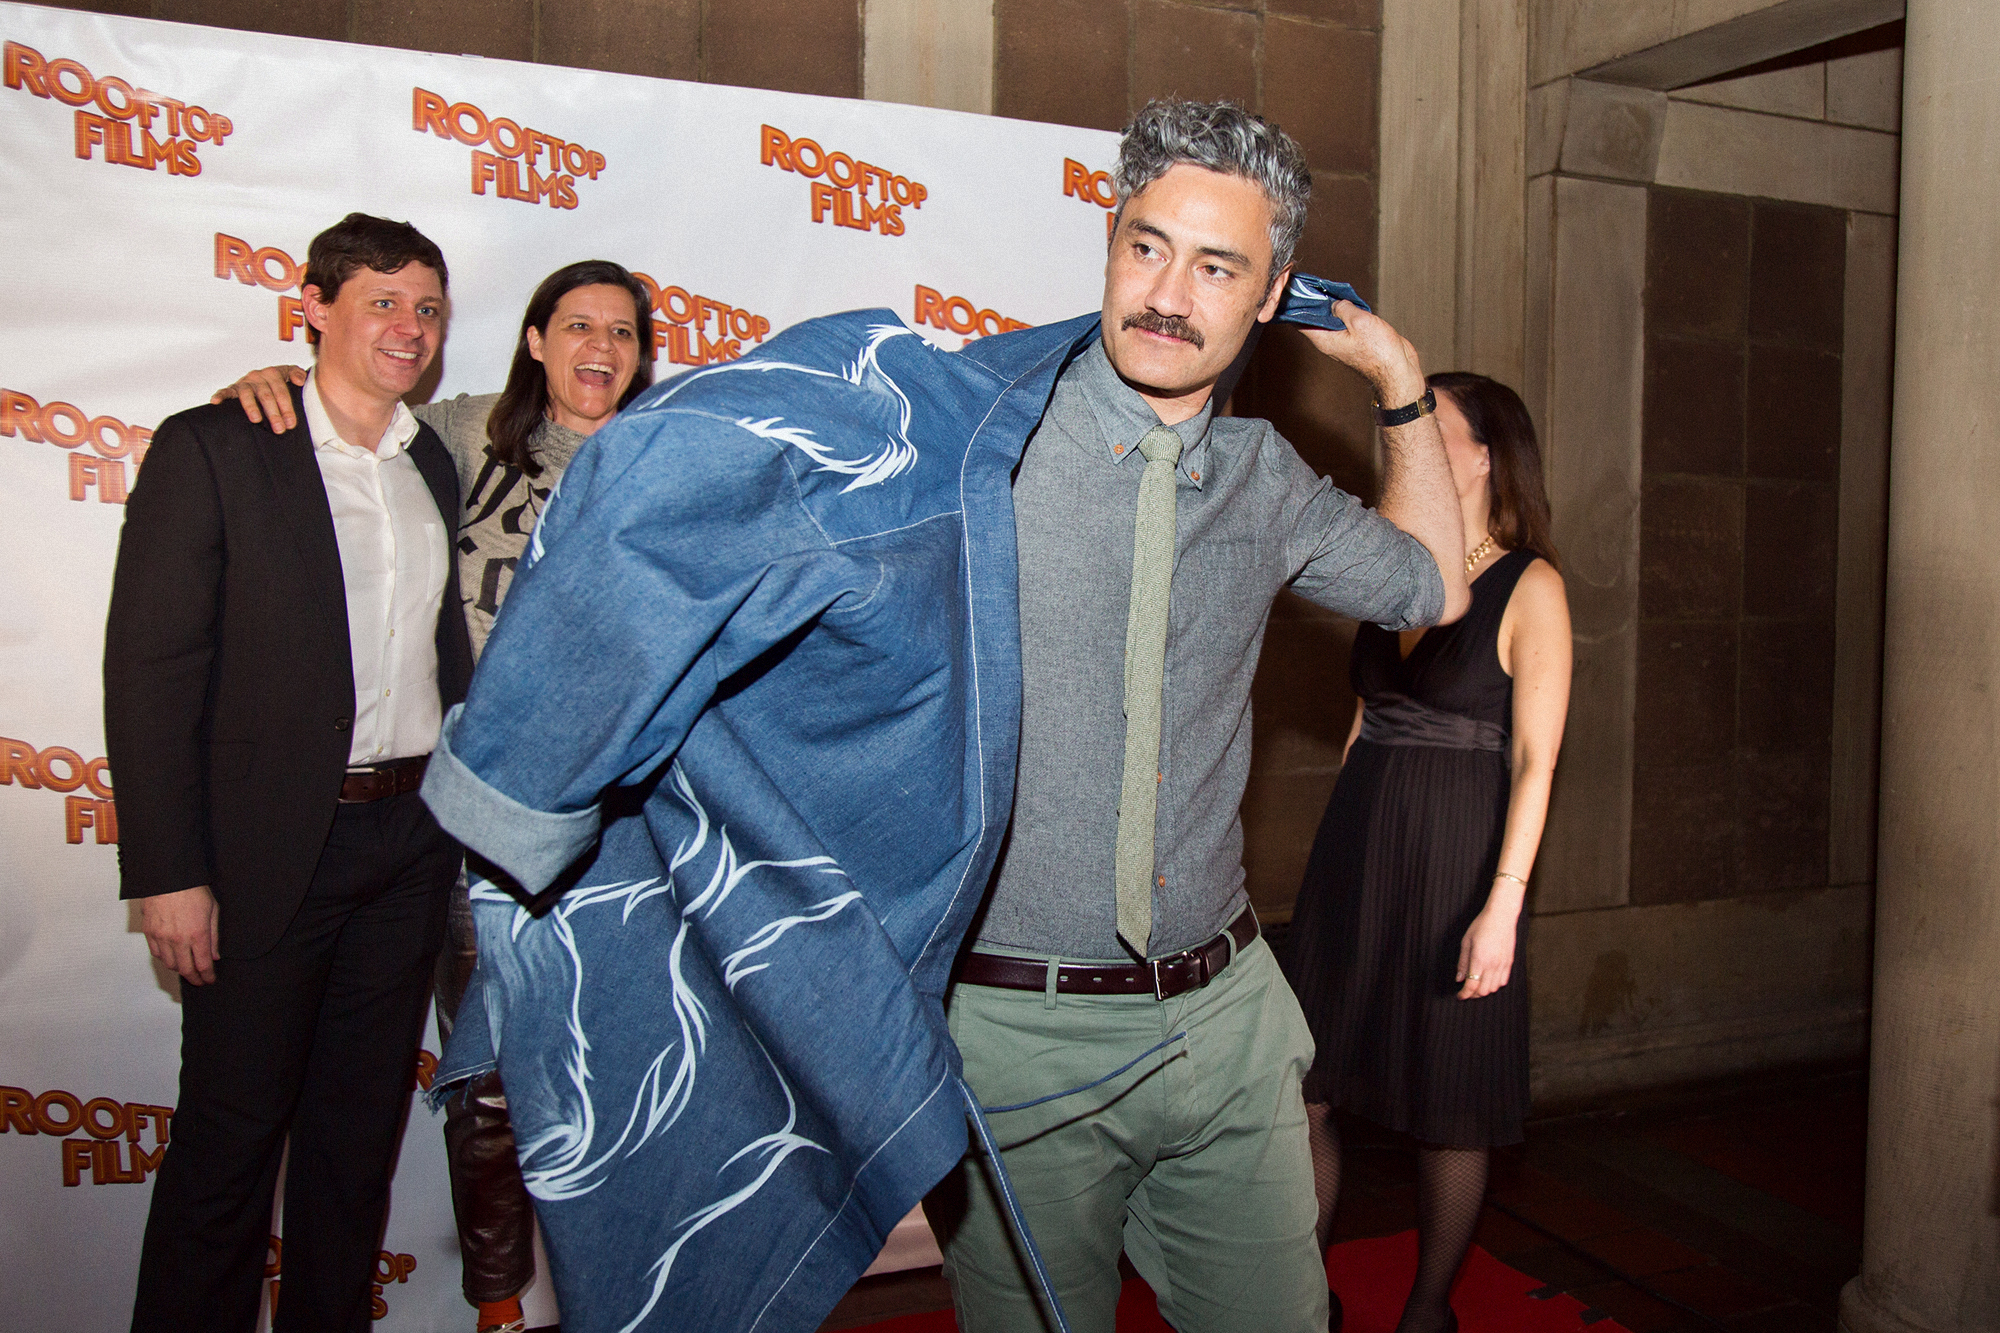 Taika Waititi with Dan Nuxoll, Kirsten Johnson, and Genevieve Hsiao-Yung DeLaurier